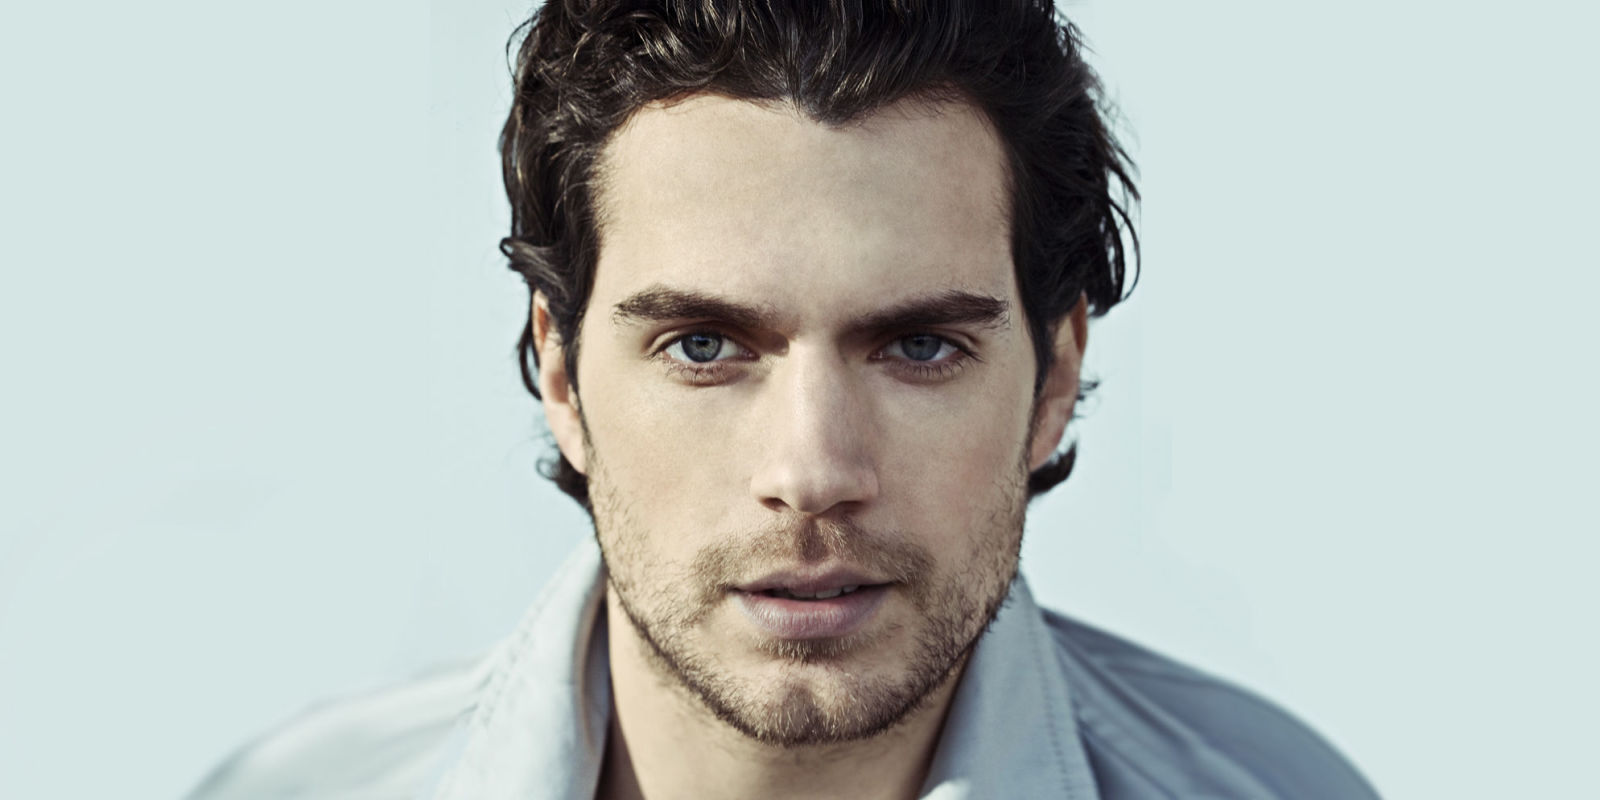 Henry Cavill Most Handsome Actors 2016